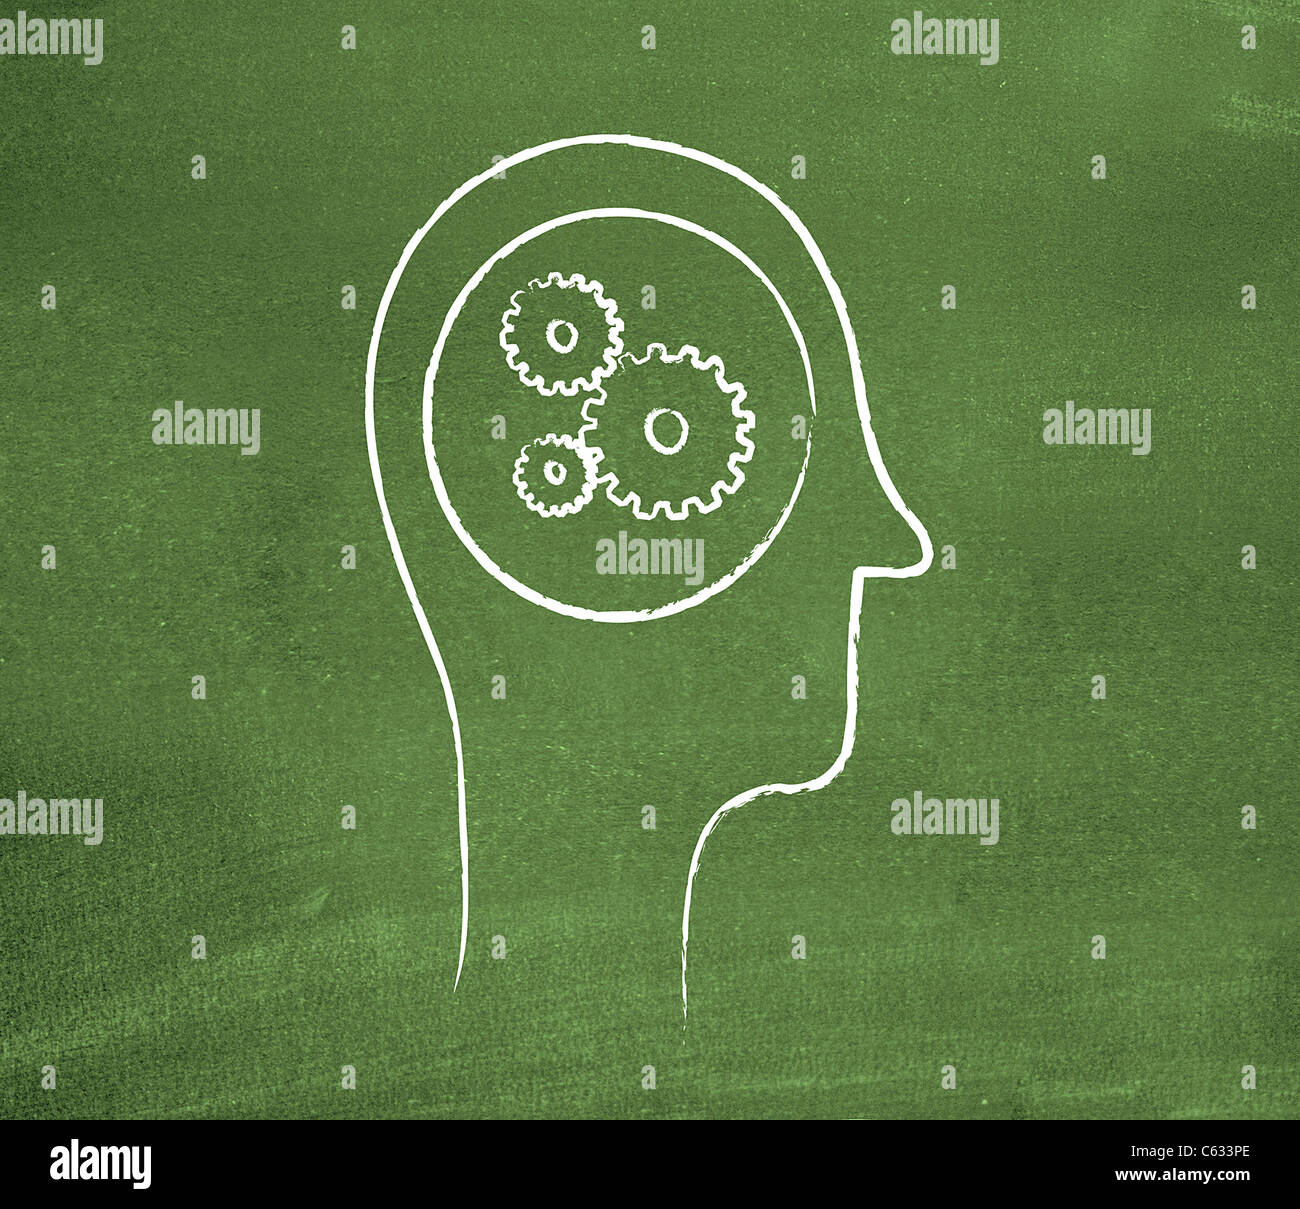 Intelligence - Stock Image